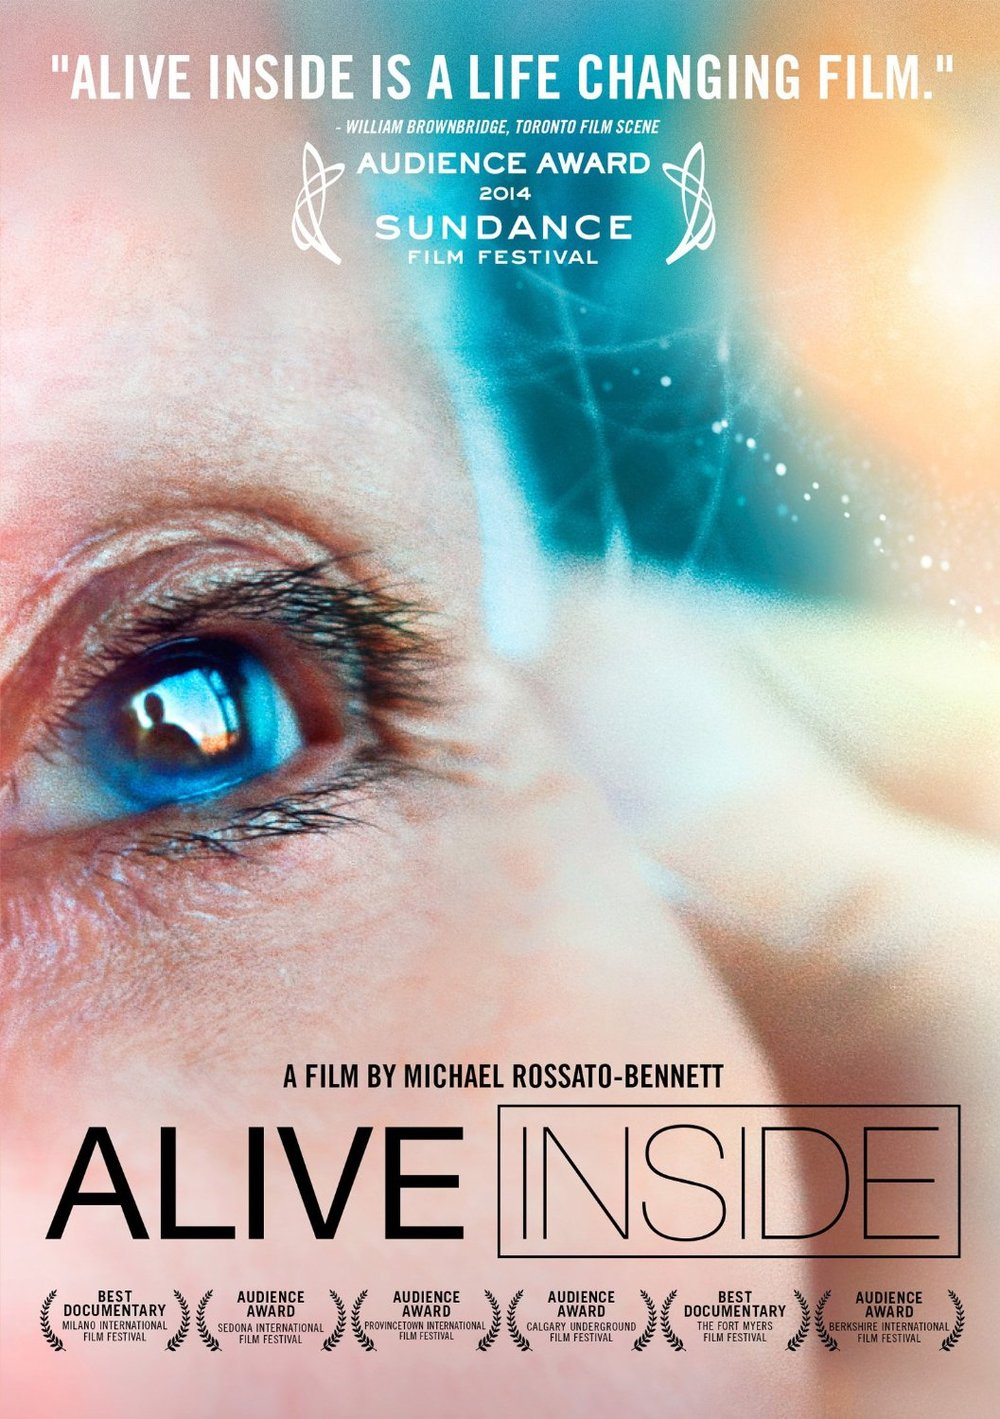 Alive Inside documentary